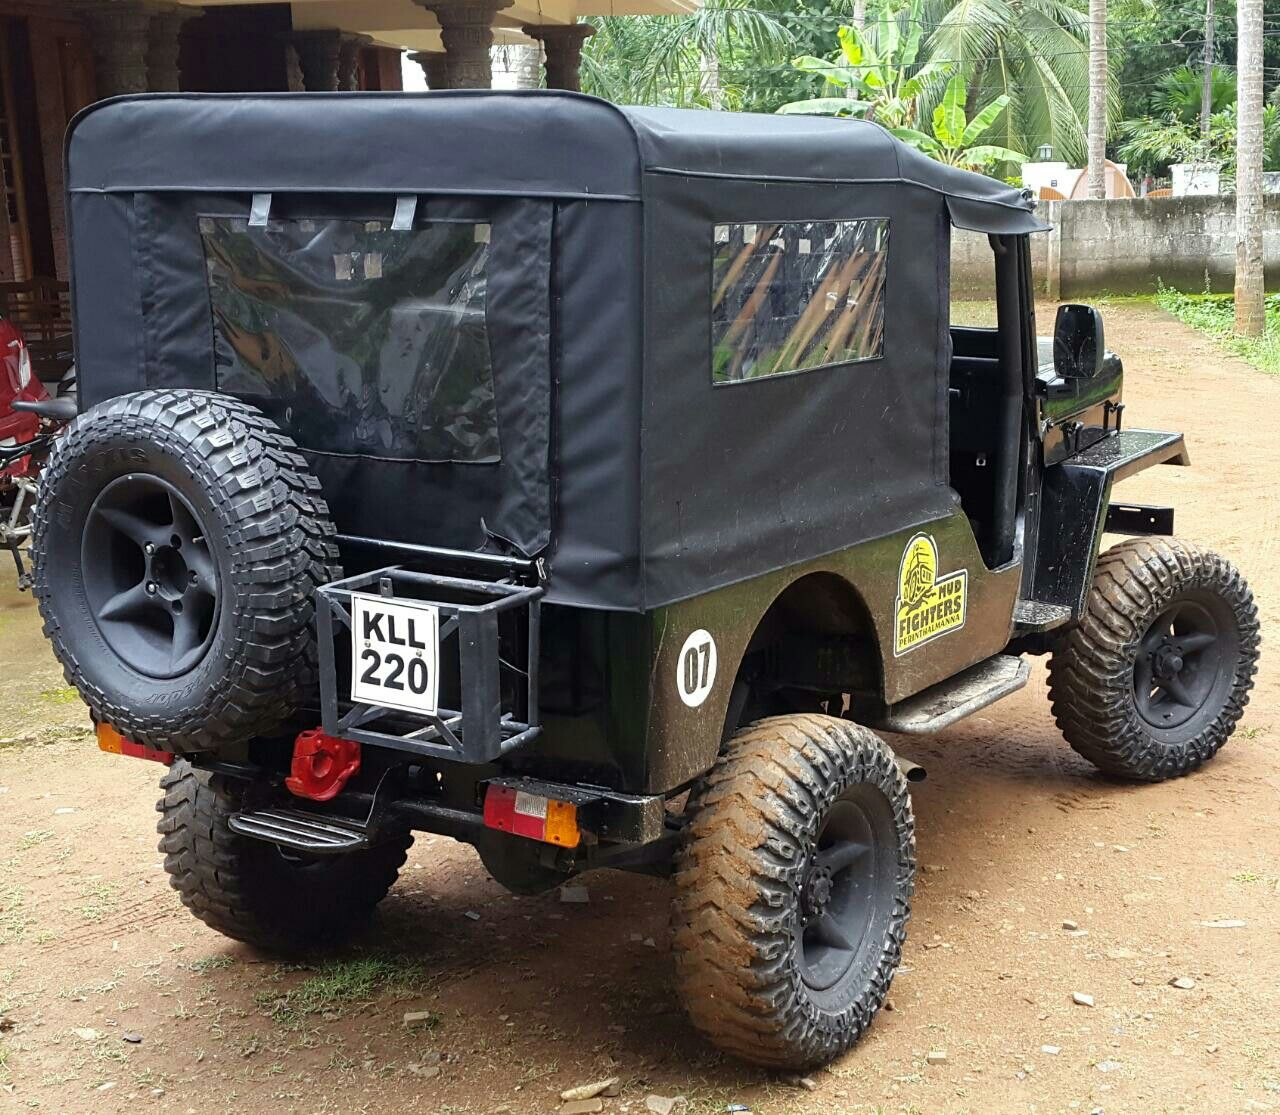 Mahindra Jeep Cj500 4 4 Lifted By Team Mforc Perinthalmanna Kerala India